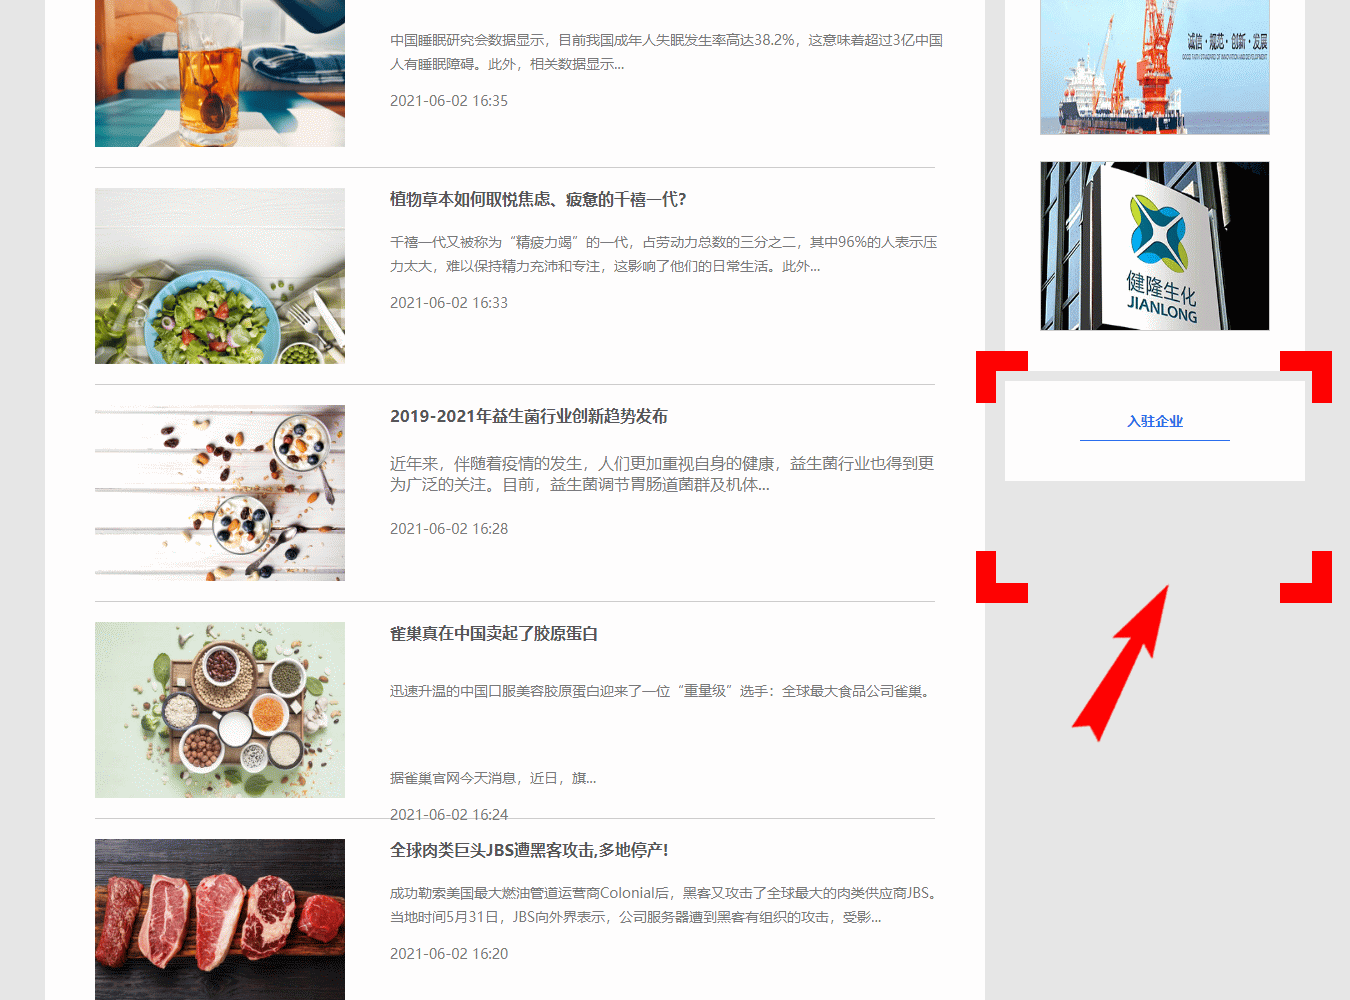 Chinese Site News Center ZHN1 display